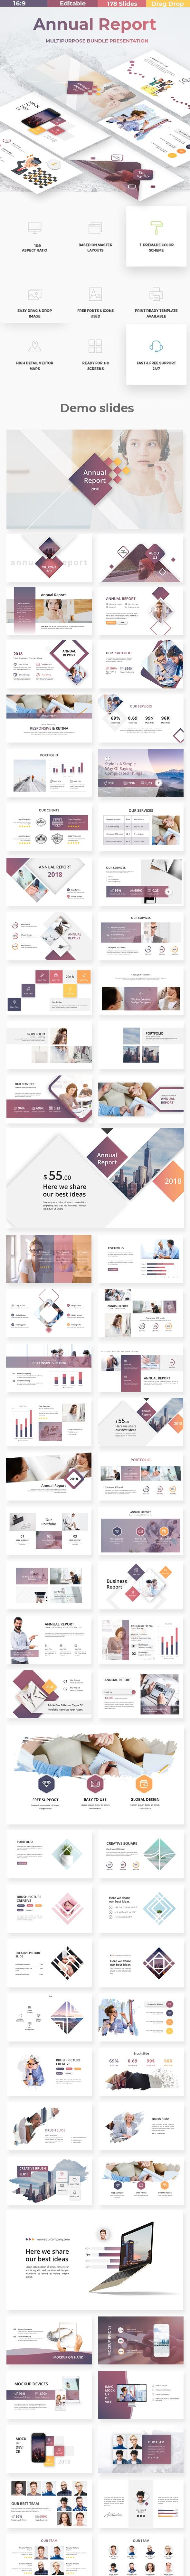 Annual Report - Business Google Slide Template - Google Slides Presentation Templates